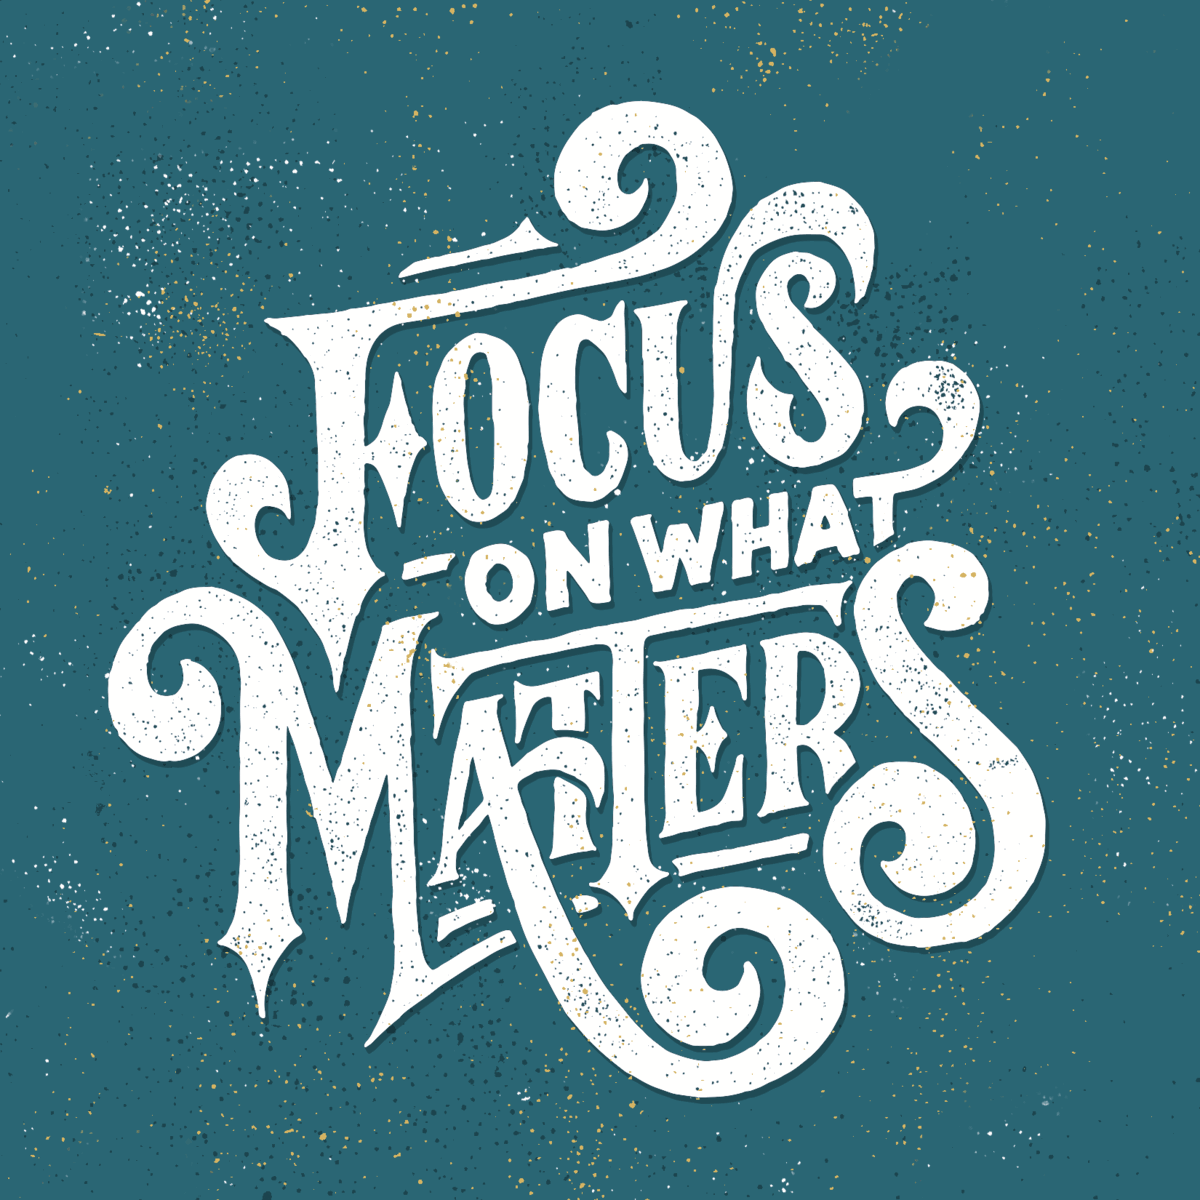 Focus on what matters quote